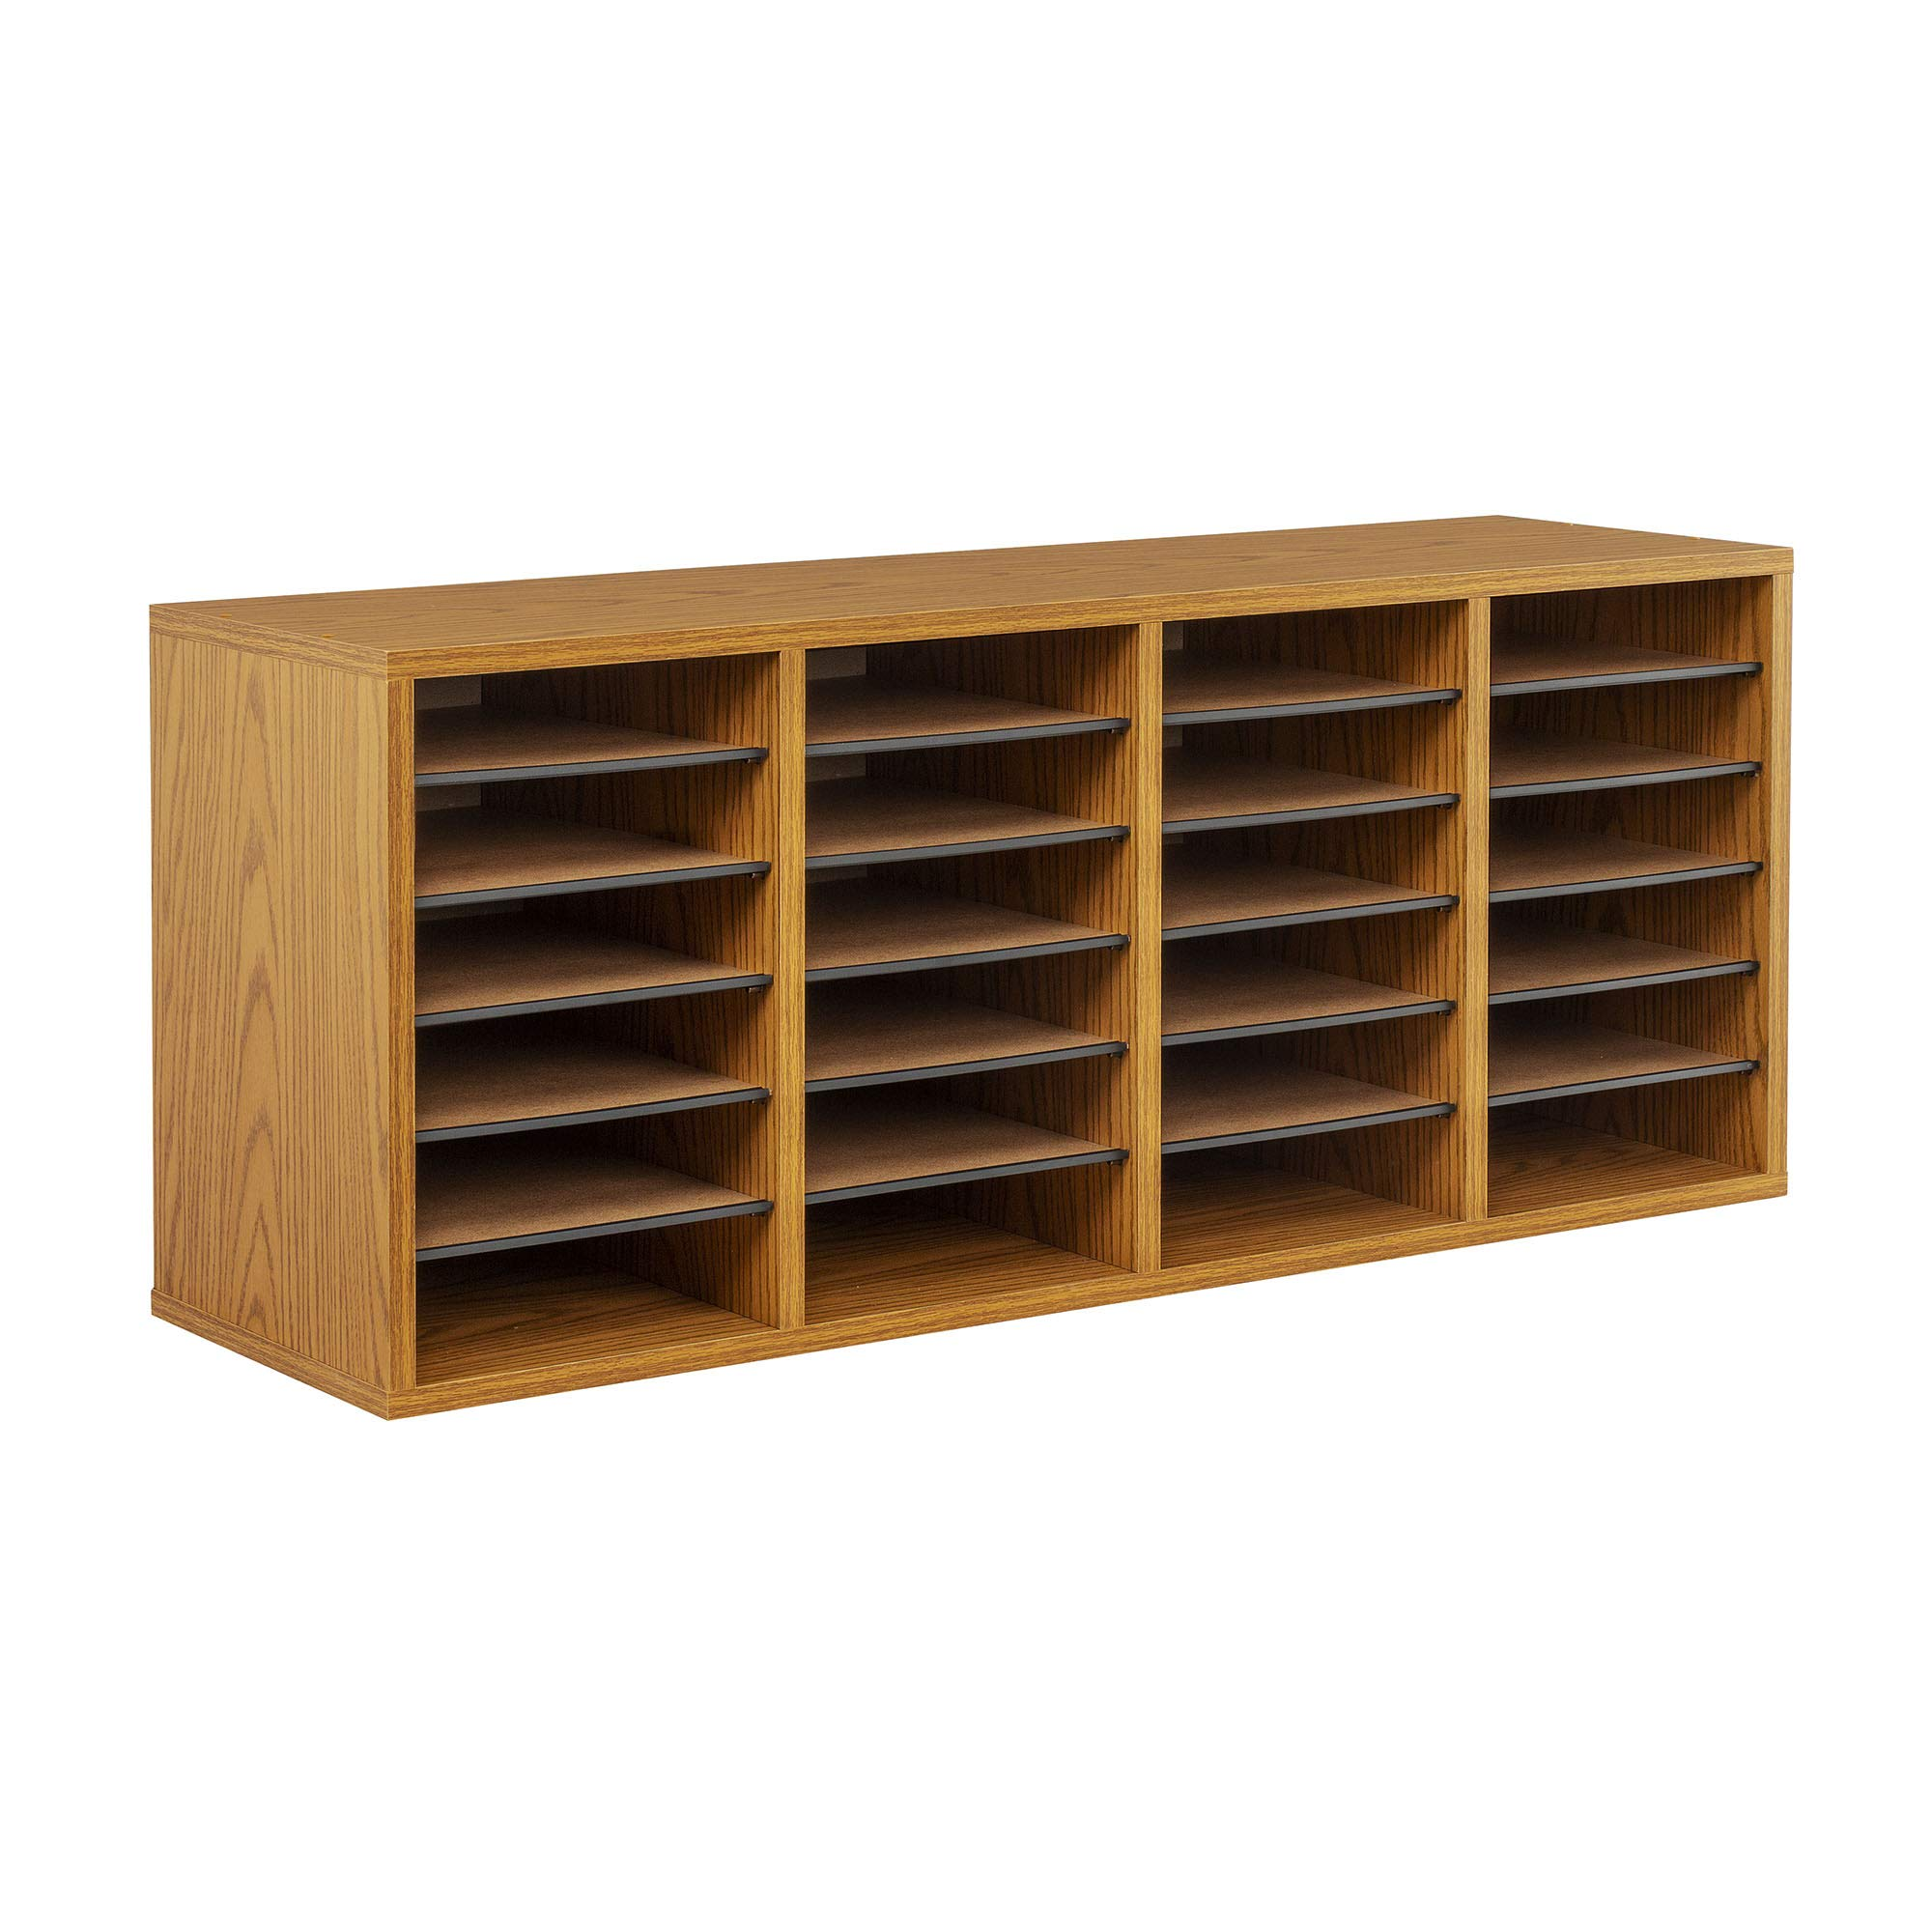 Safco Products Wood Adjustable Literature Organizer, 24 Compartment, 9423MO, Medium Oak, Durable Construction, Removable Shelves, Stackable by Safco Products